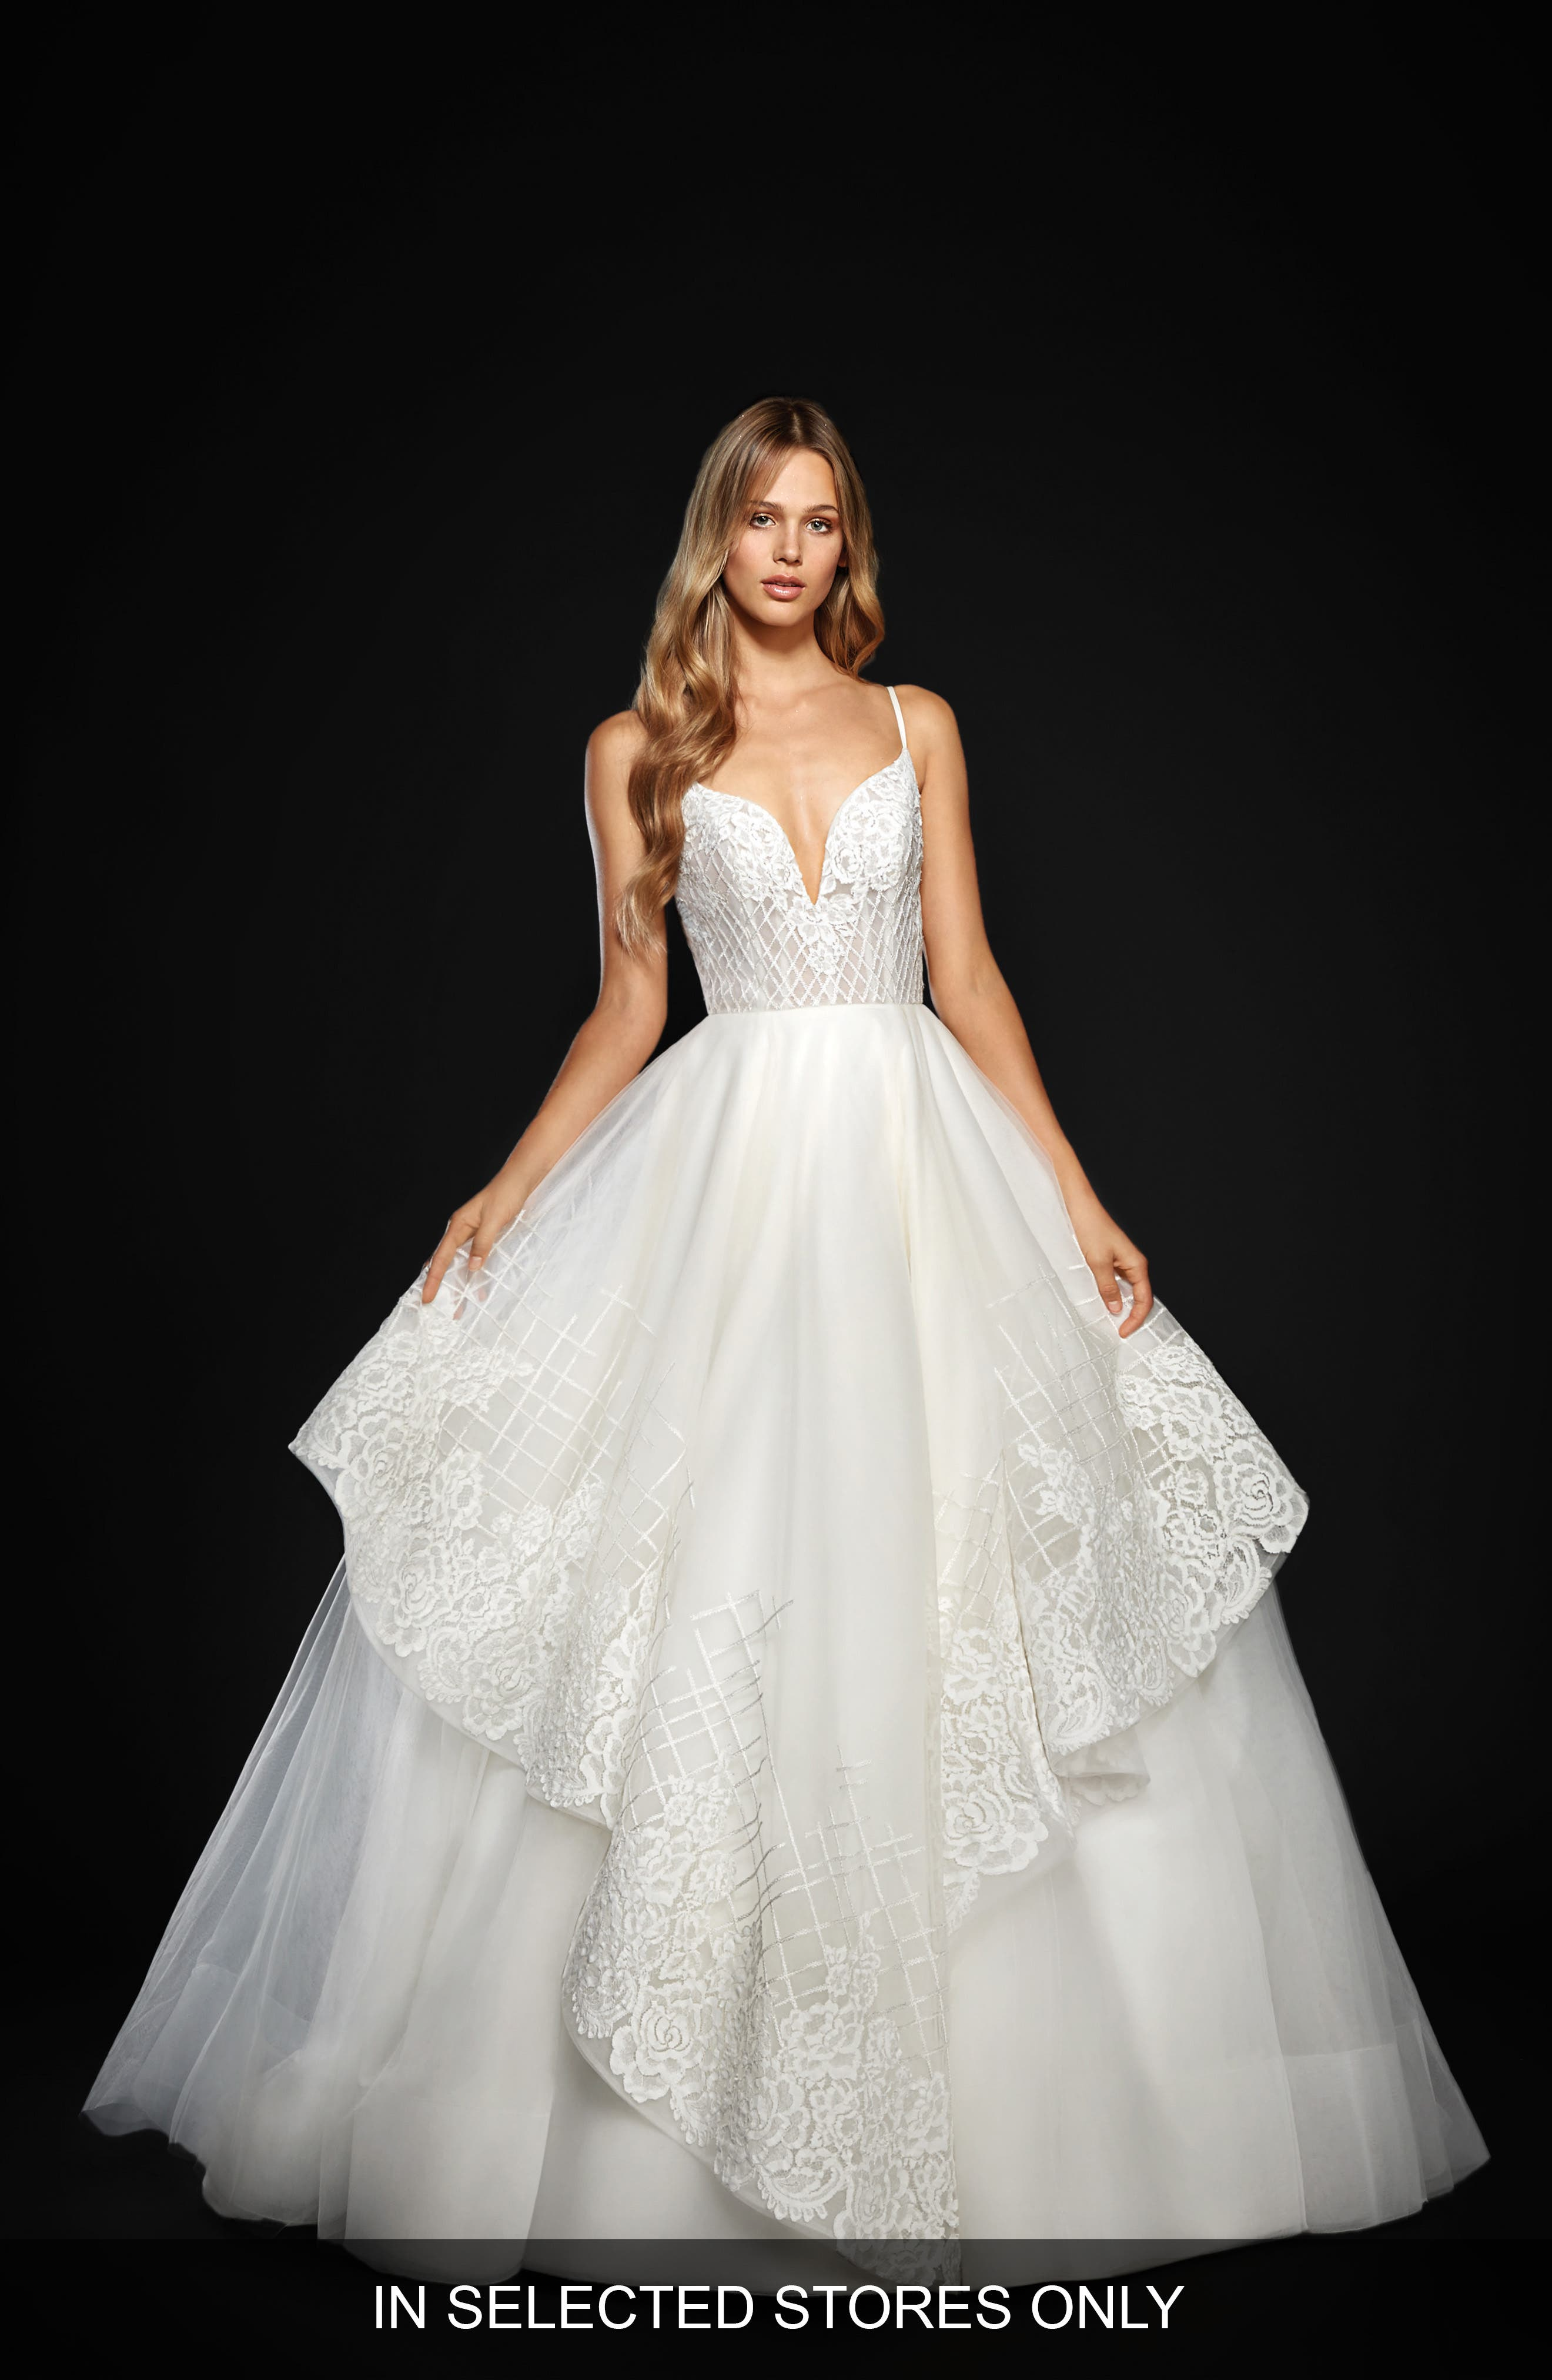 Hayley Paige Hollis Floral Trellis Embroidered Tulle Ballgown (In Selected Stores Only)